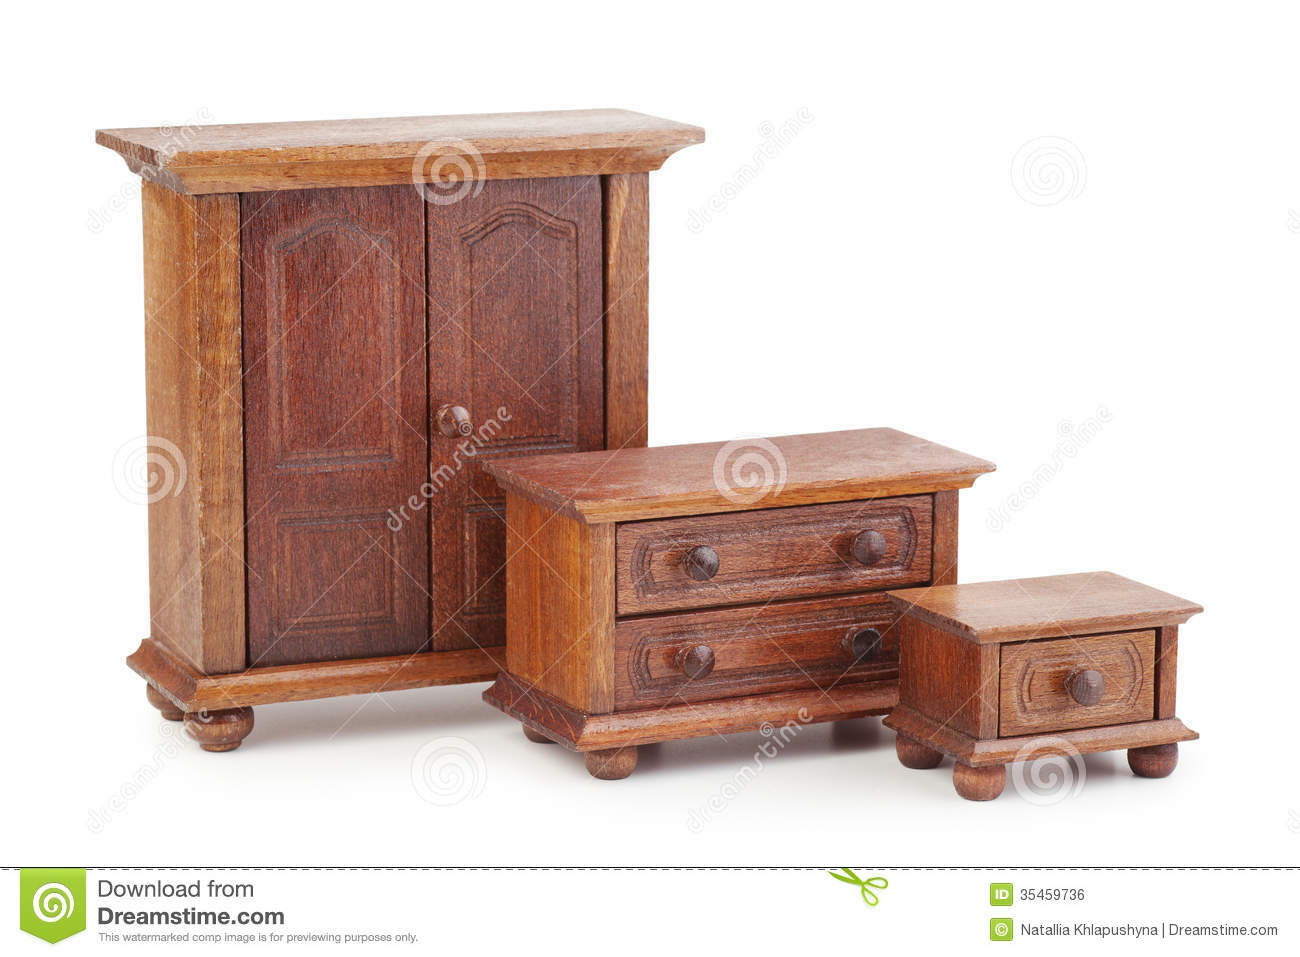 Doll wooden furniture set wardrobe chest of drawers and nights royalty free stock image Old wooden furniture